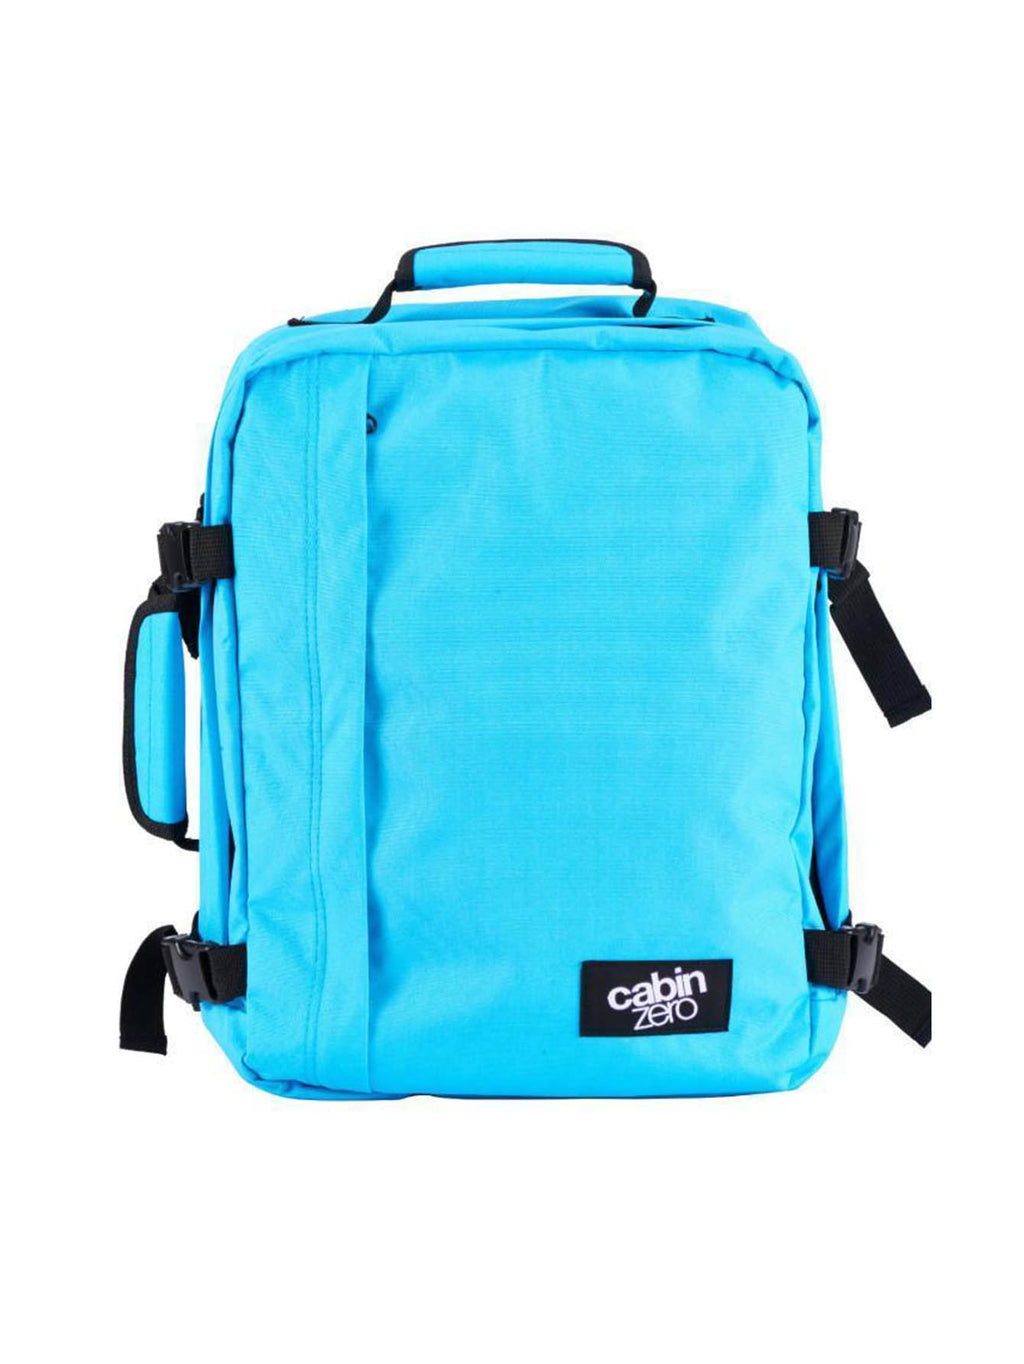 Cabinzero Classic 28L Ultra-Light Cabin Bag in Samui Blue Color